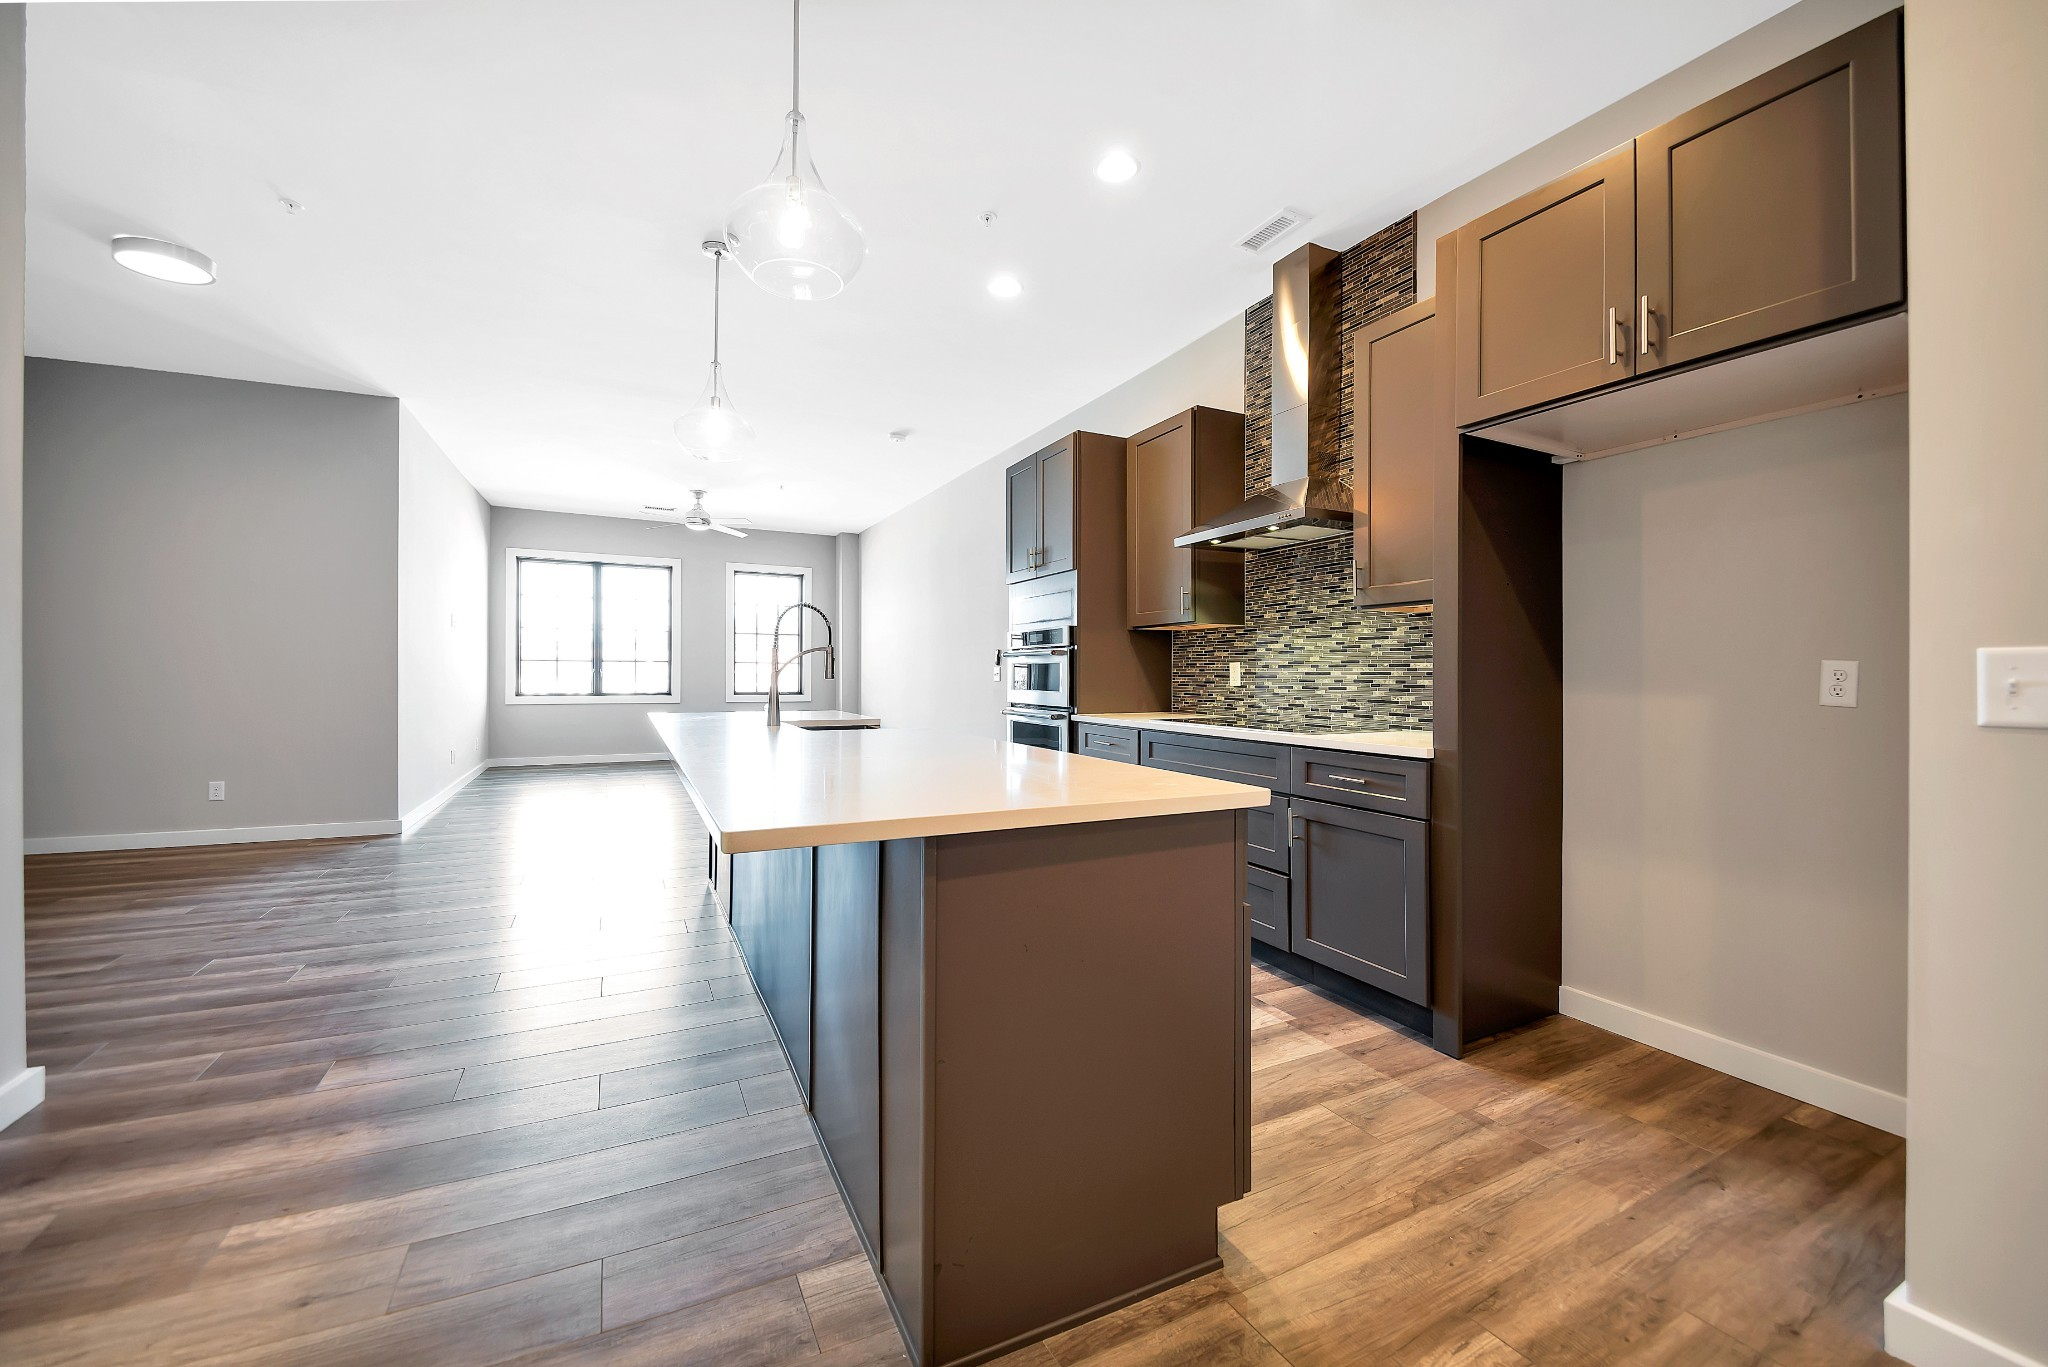 One of a Kind, new condo in downtown Brentwood. Everything is within walking distance! Large penthouse w/ quartz countertops, induction cooktop & more. Tankless water heater, Pella windows and doors. Shared Elevator. Great Live/Work opportunity! Retail space available for lease on first floor. Also for lease $3750 per month